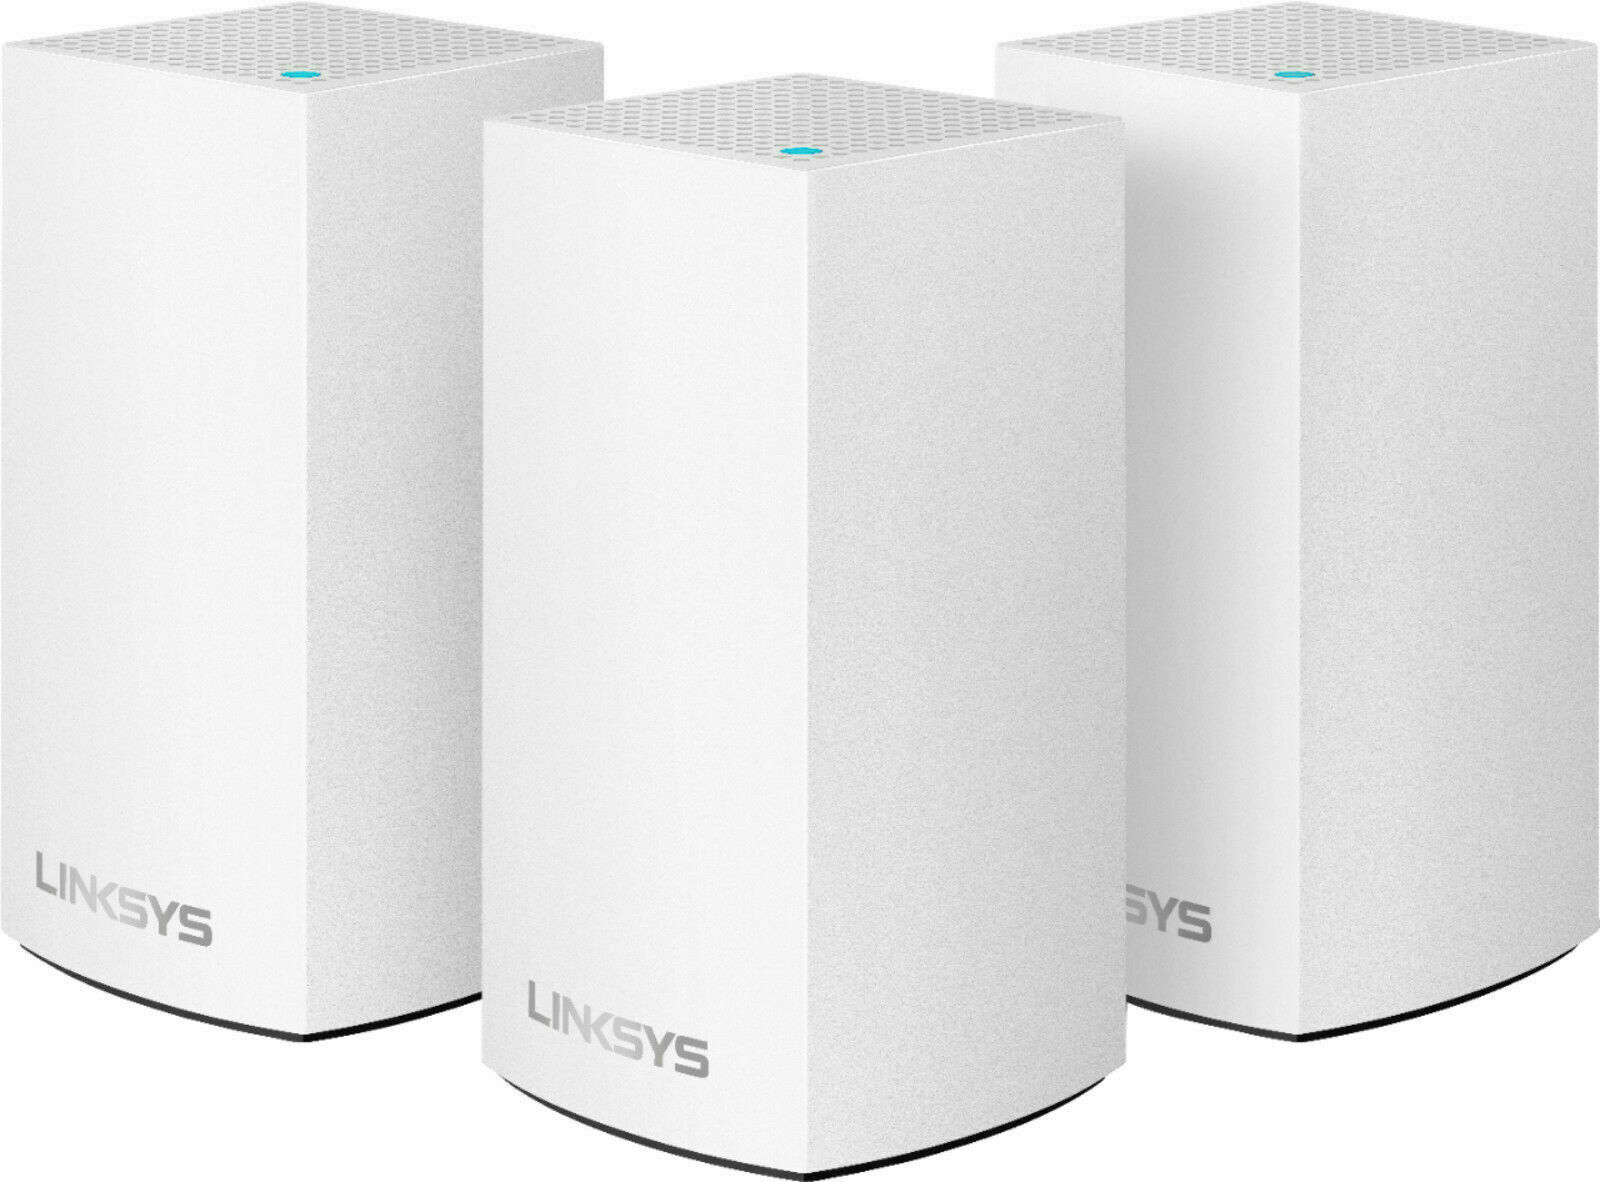 NEW Linksys Velop Intelligent Mesh WiFi System 3-Pack White AC3600 Dual Band. Buy it now for 149.90